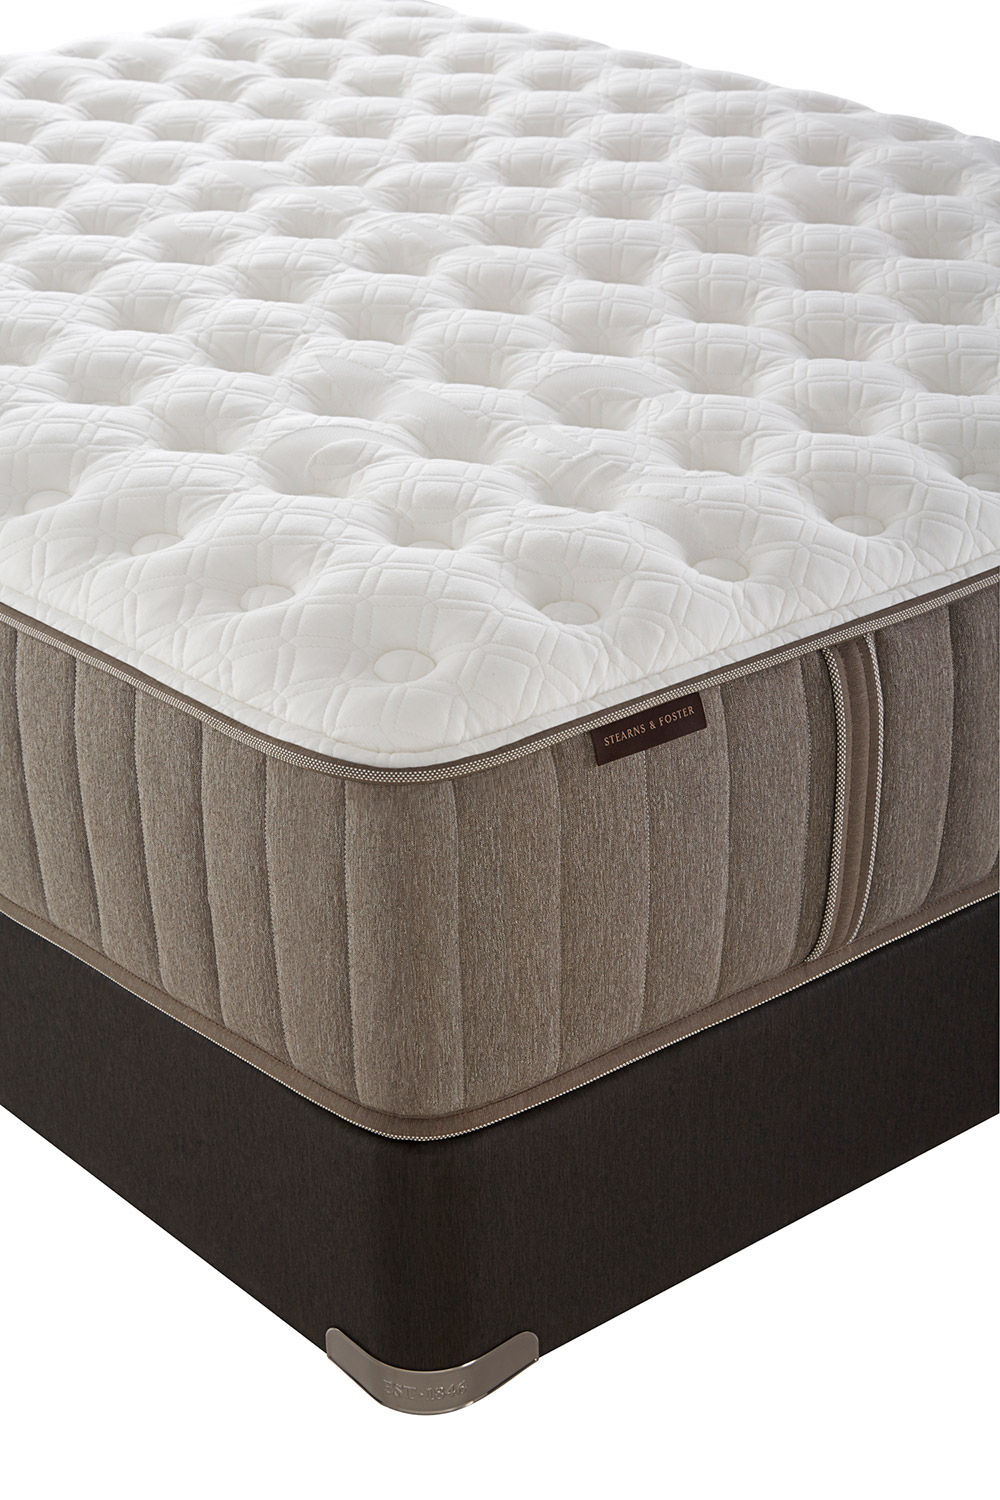 Picture of Stearns & Foster Scarborough Plush Tighttop Full Mattress Only